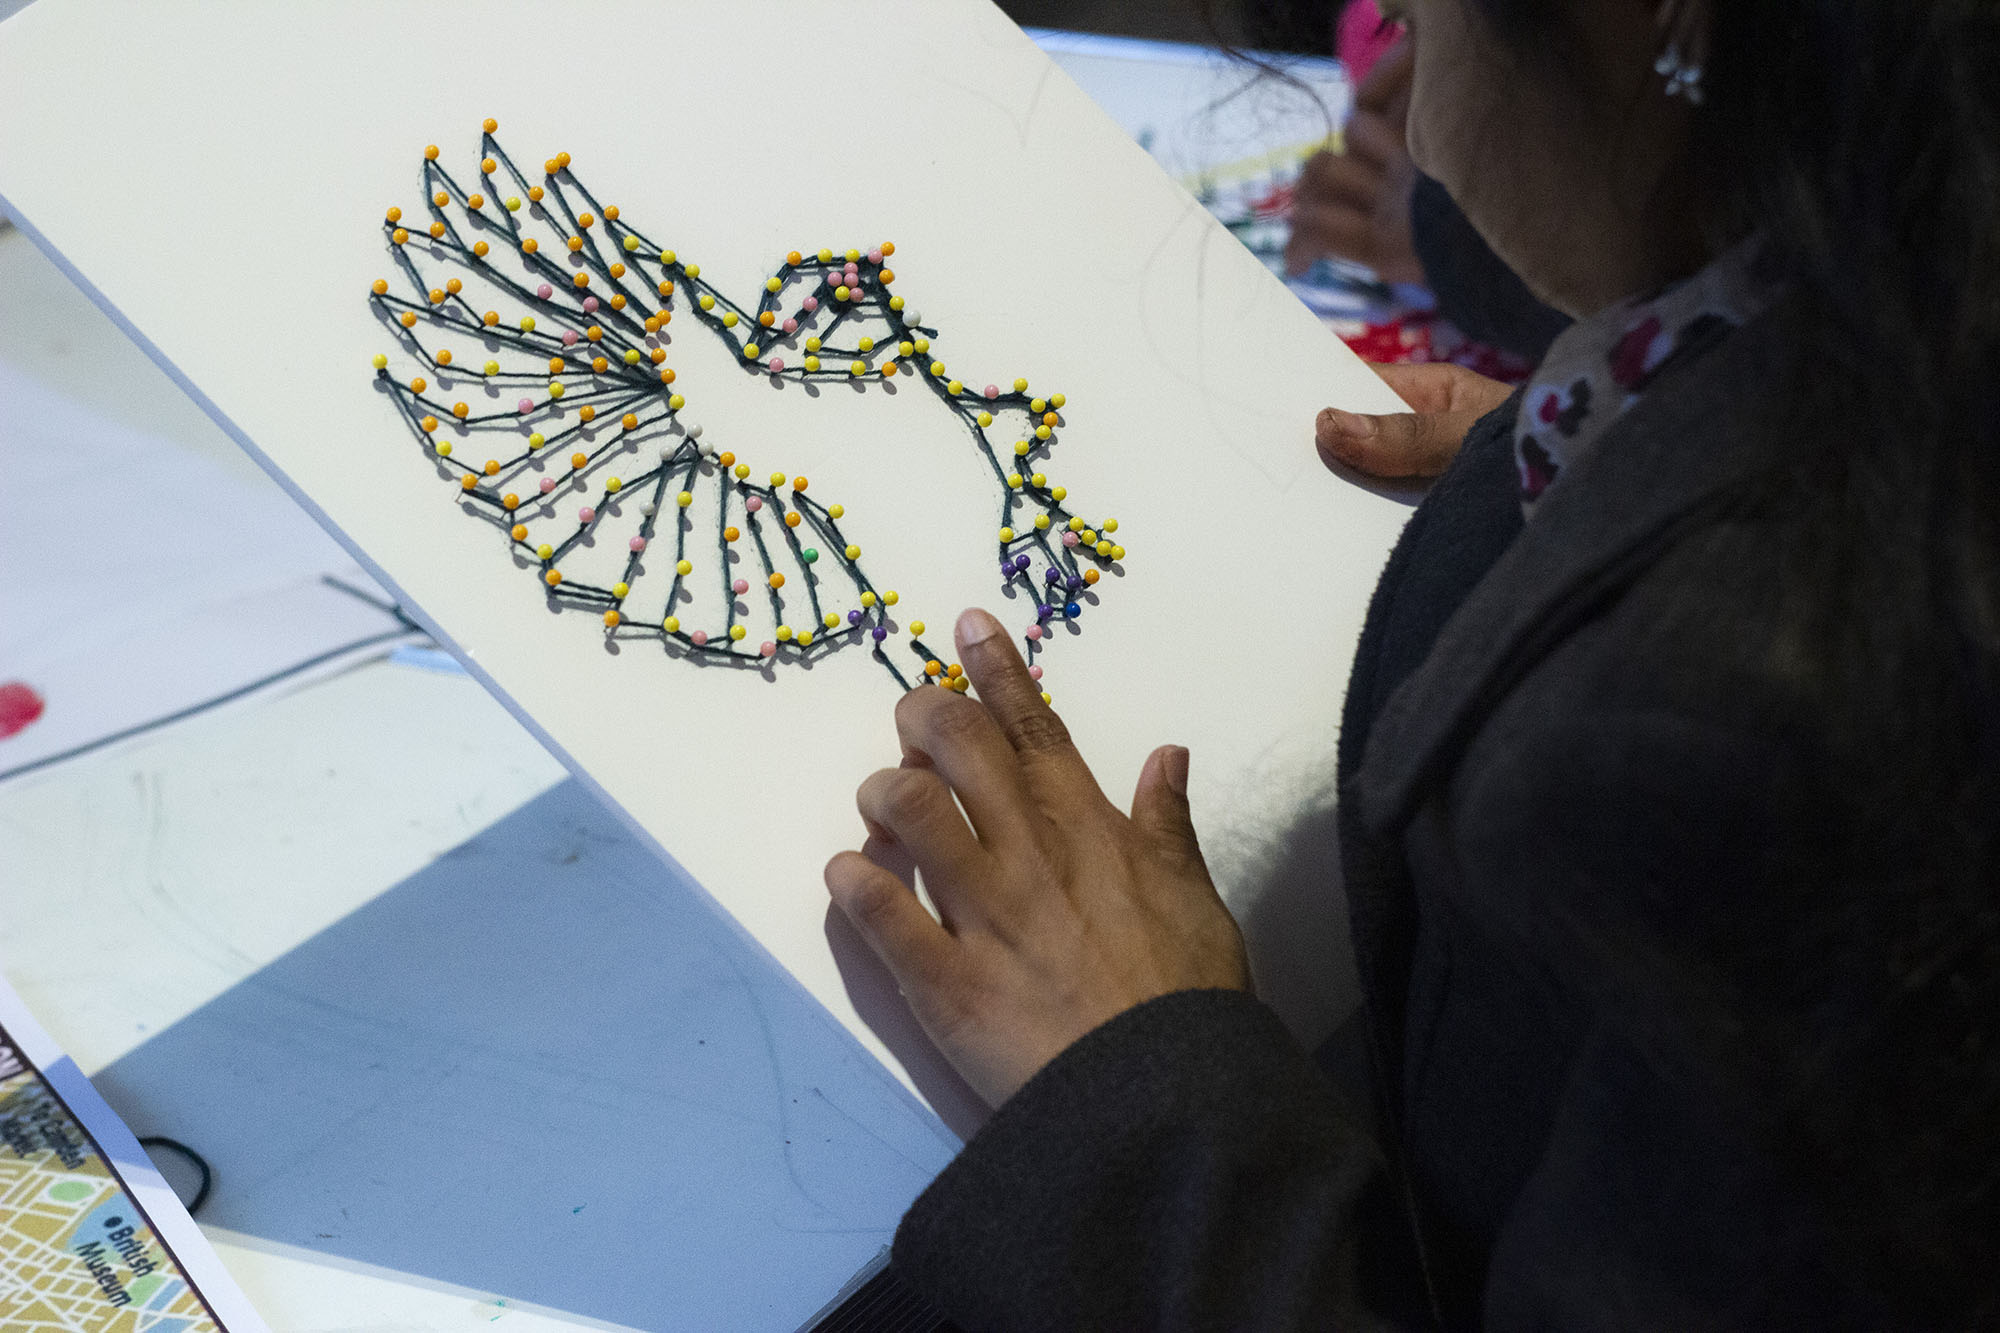 Child creating artwork of a bird.